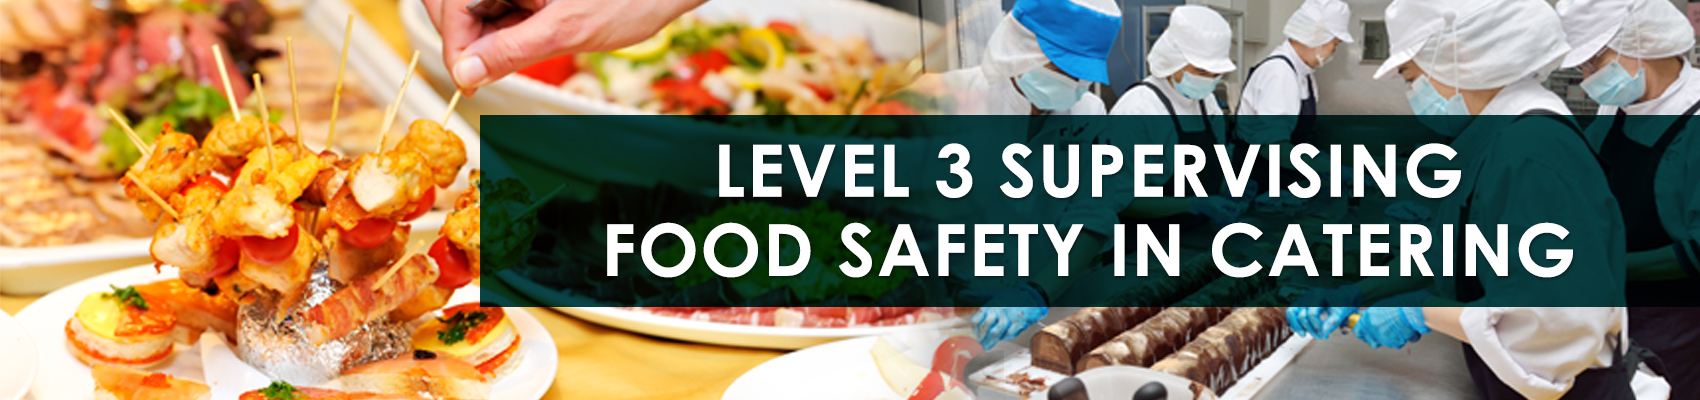 Level 3 Supervising Food Safety in Catering